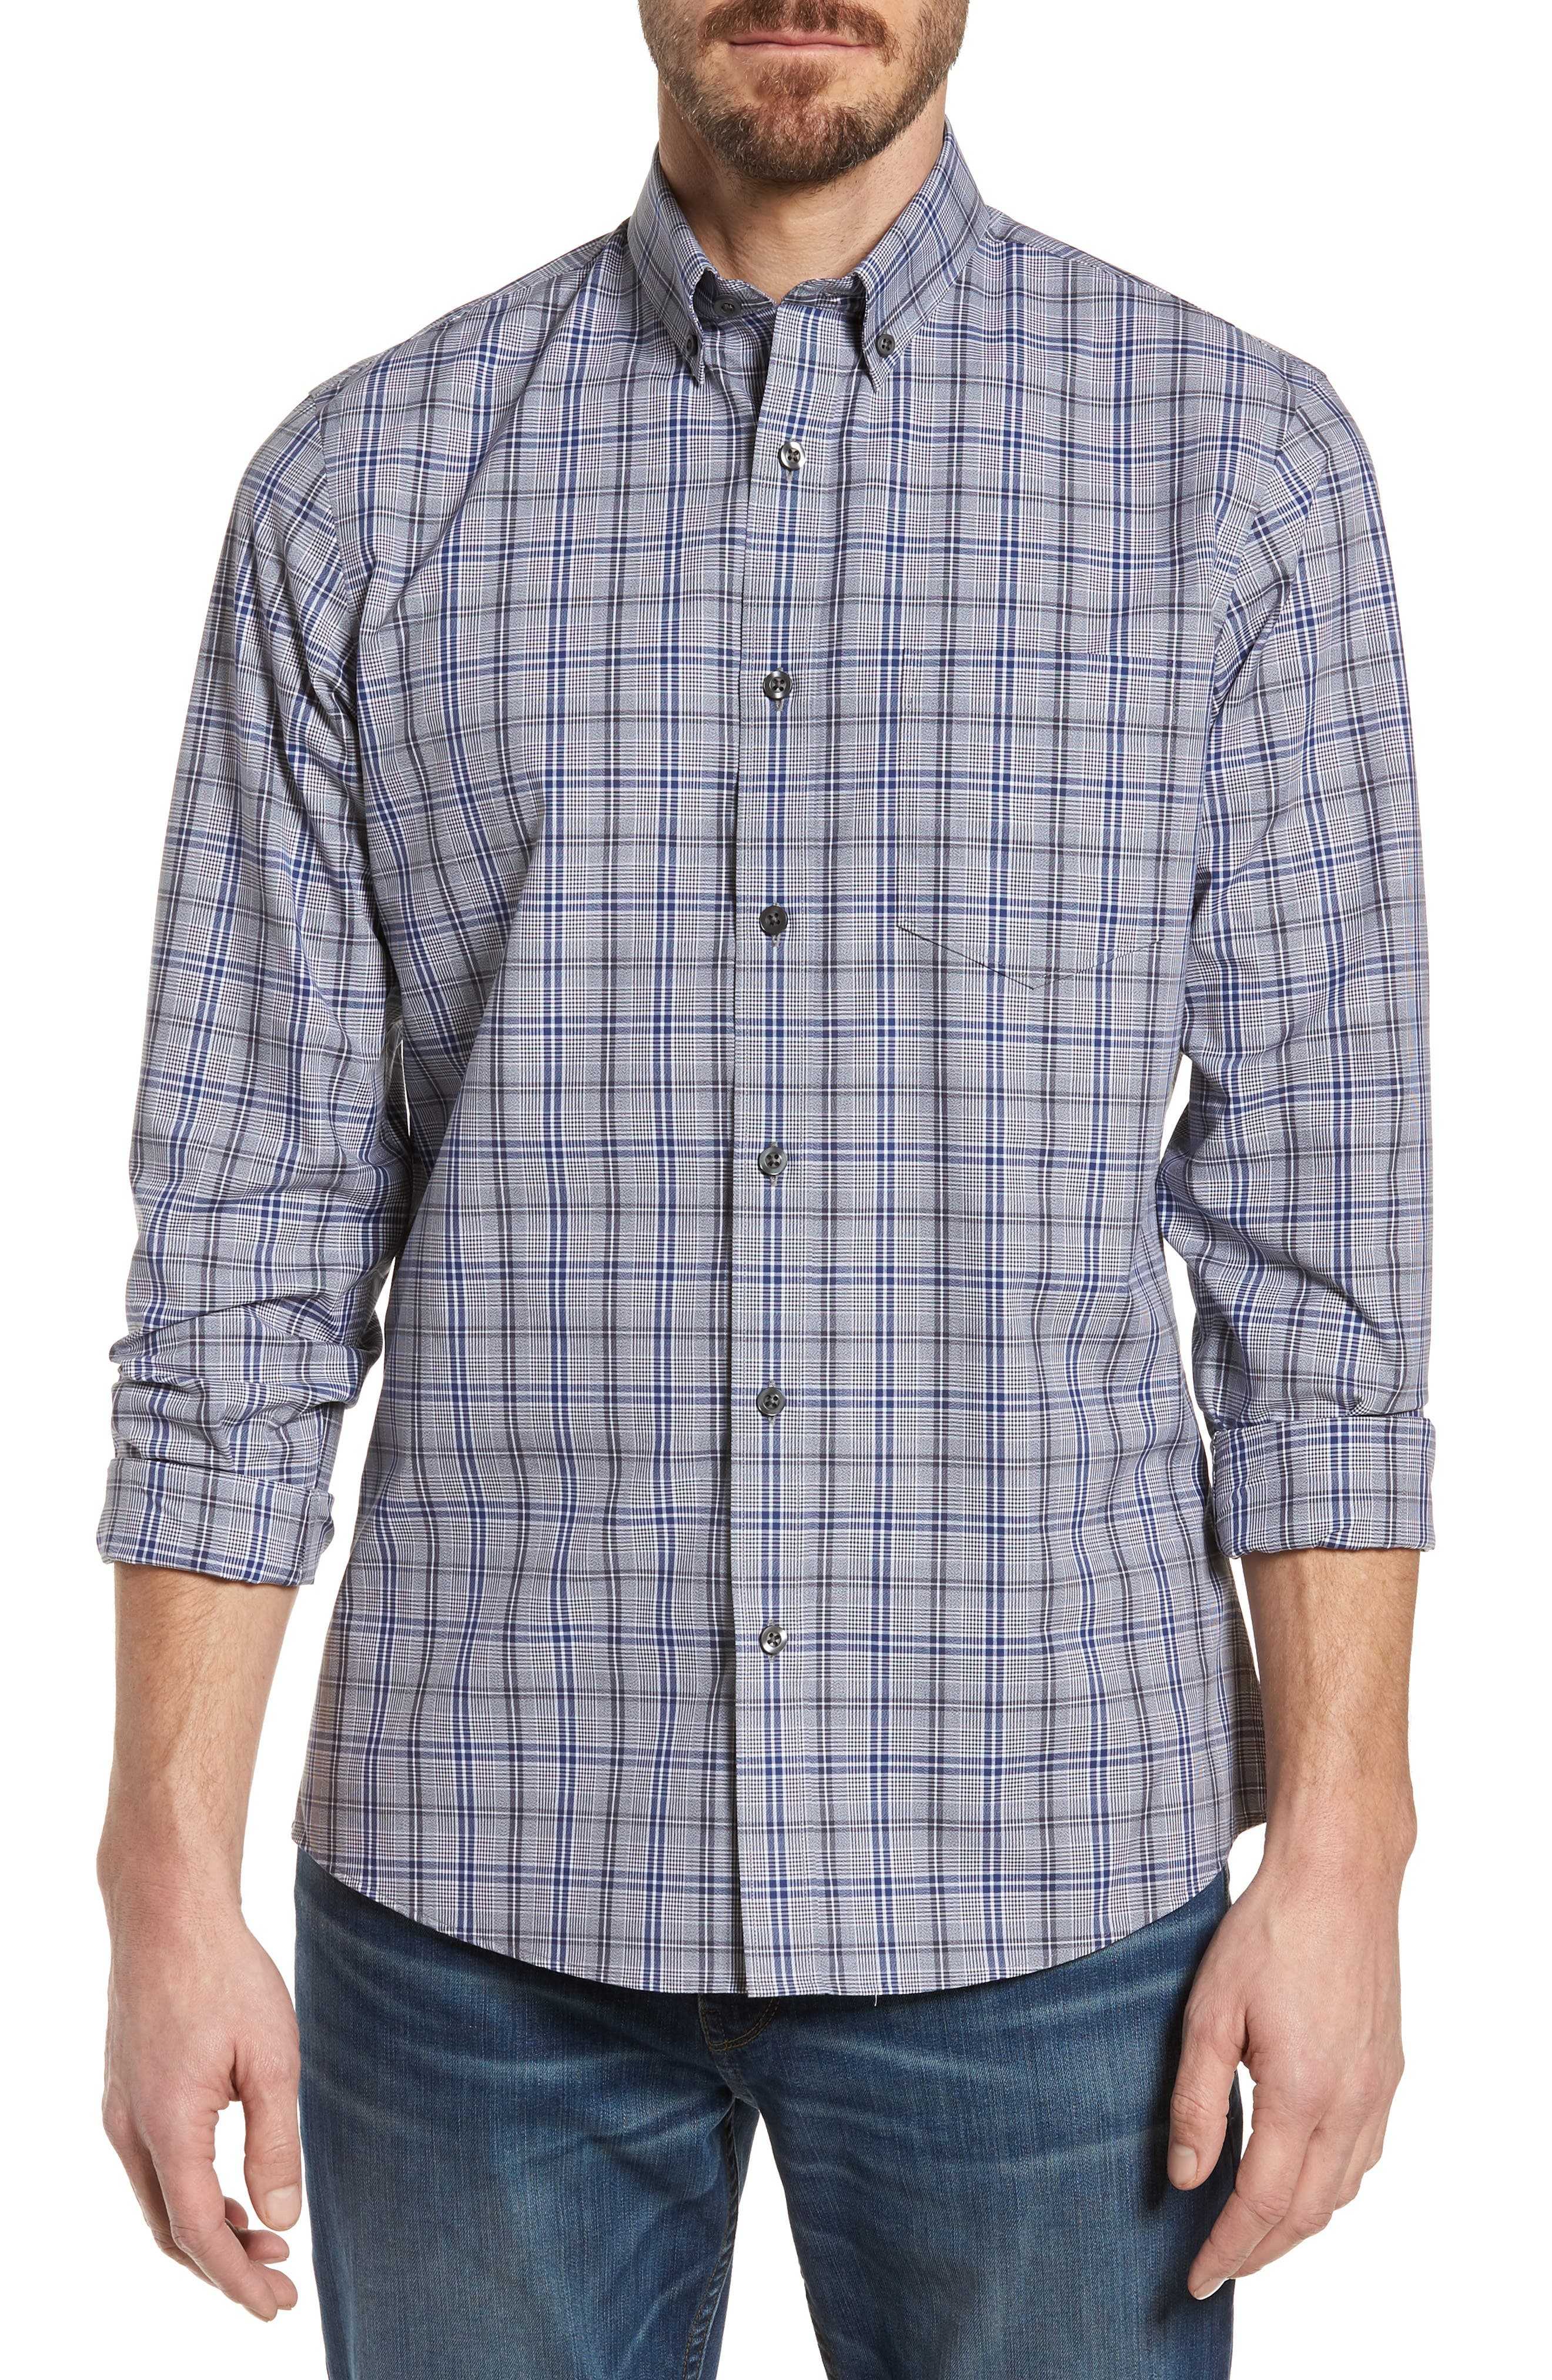 Nordstrom Men's Shop Regular Fit Non-Iron Plaid Sport Shirt